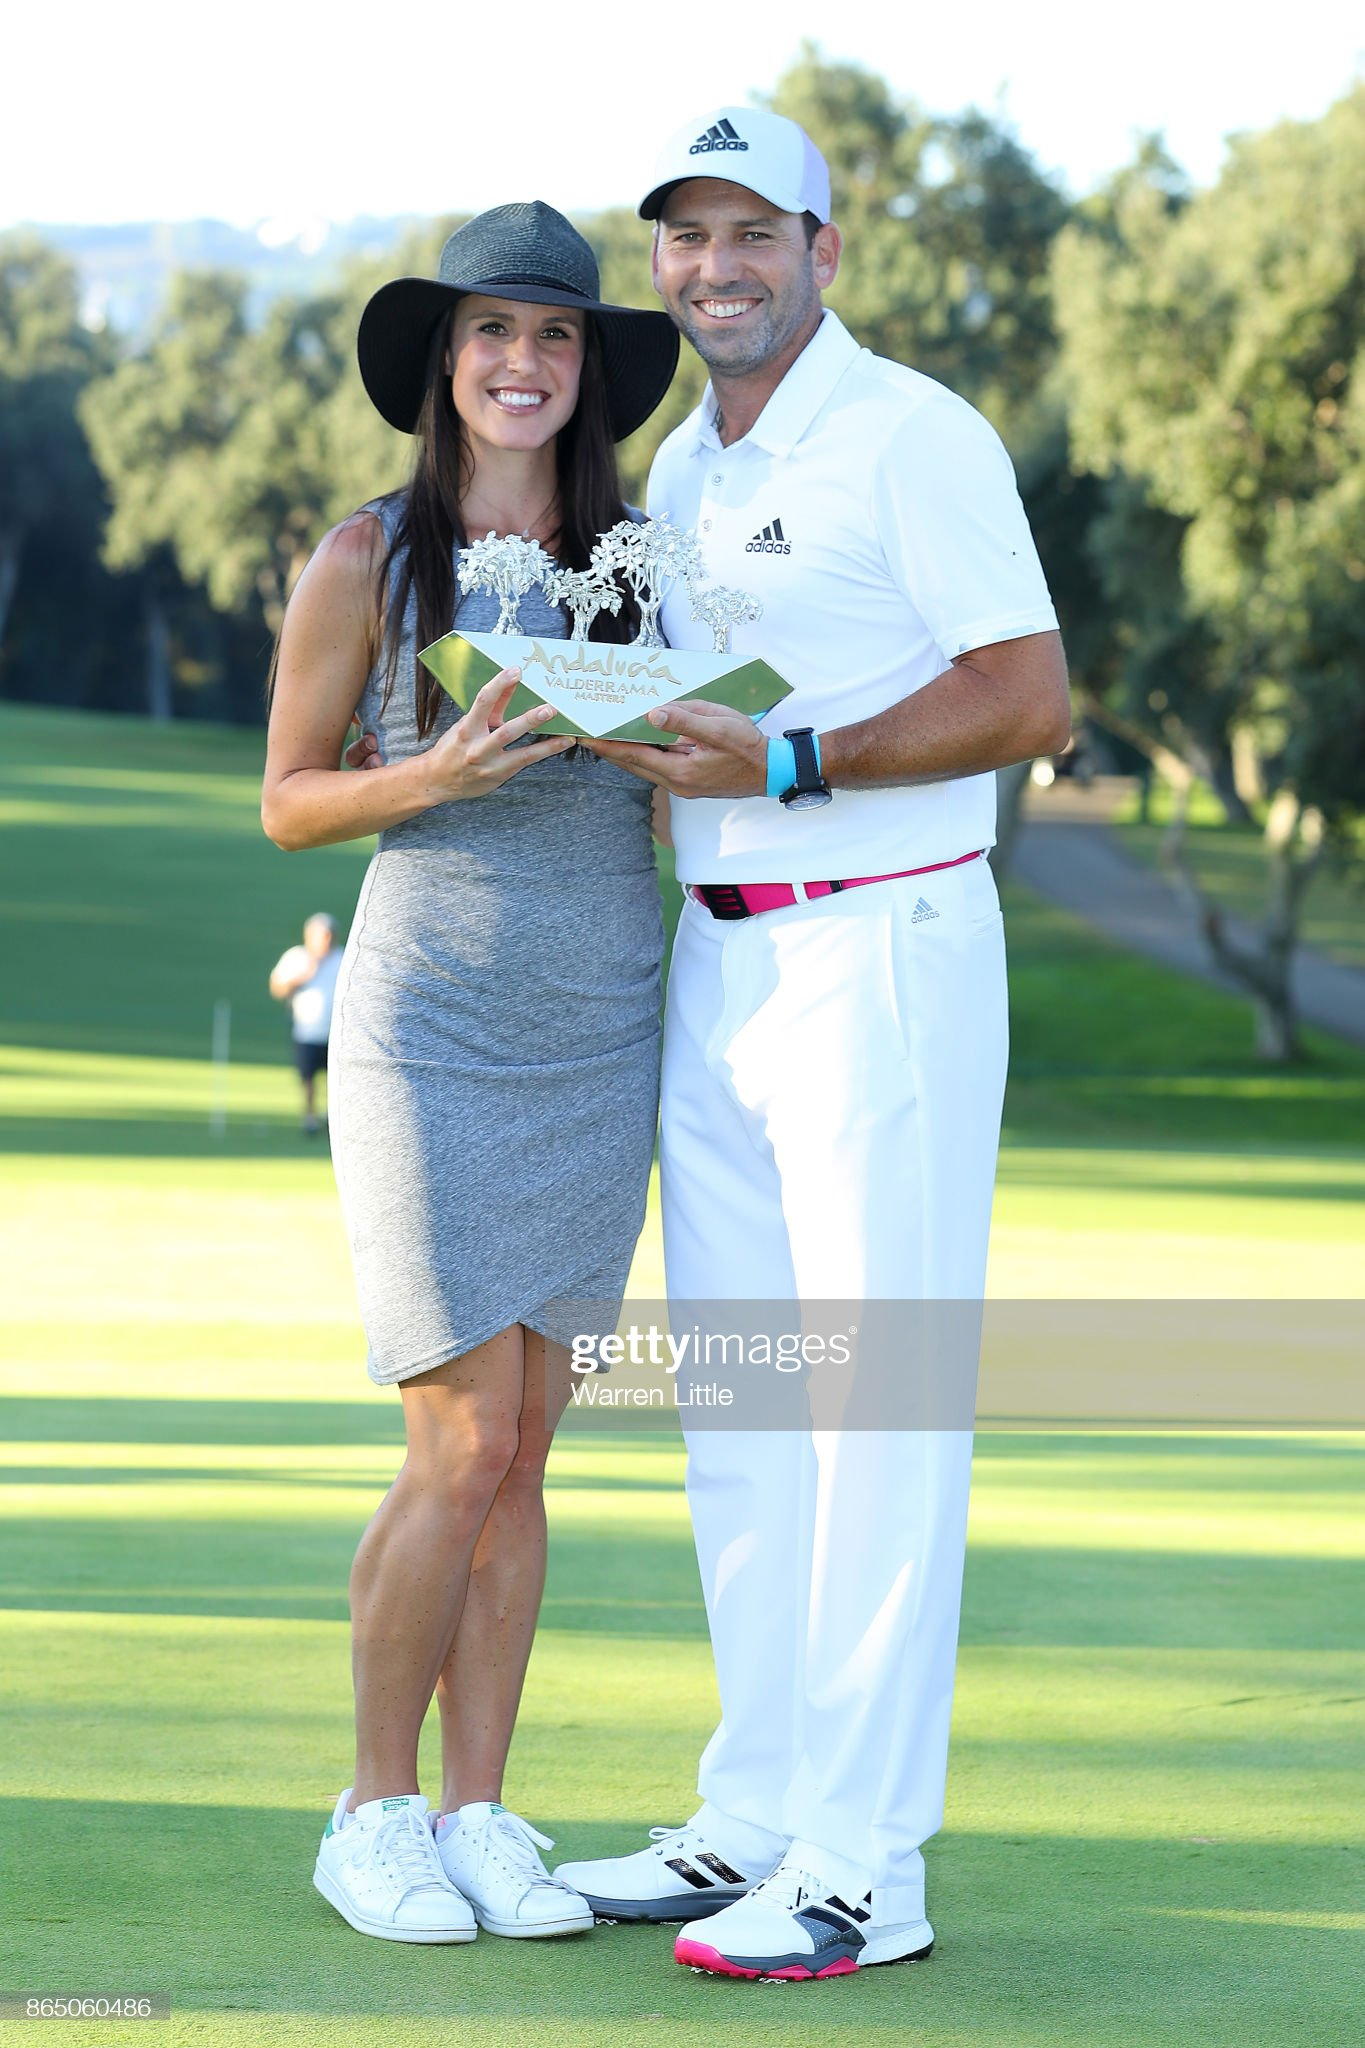 ¿Cuánto mide Sergio García Fernández? (Golf) Sergio-garcia-of-spain-poses-with-the-trophy-and-wife-angela-akins-picture-id865060486?s=2048x2048